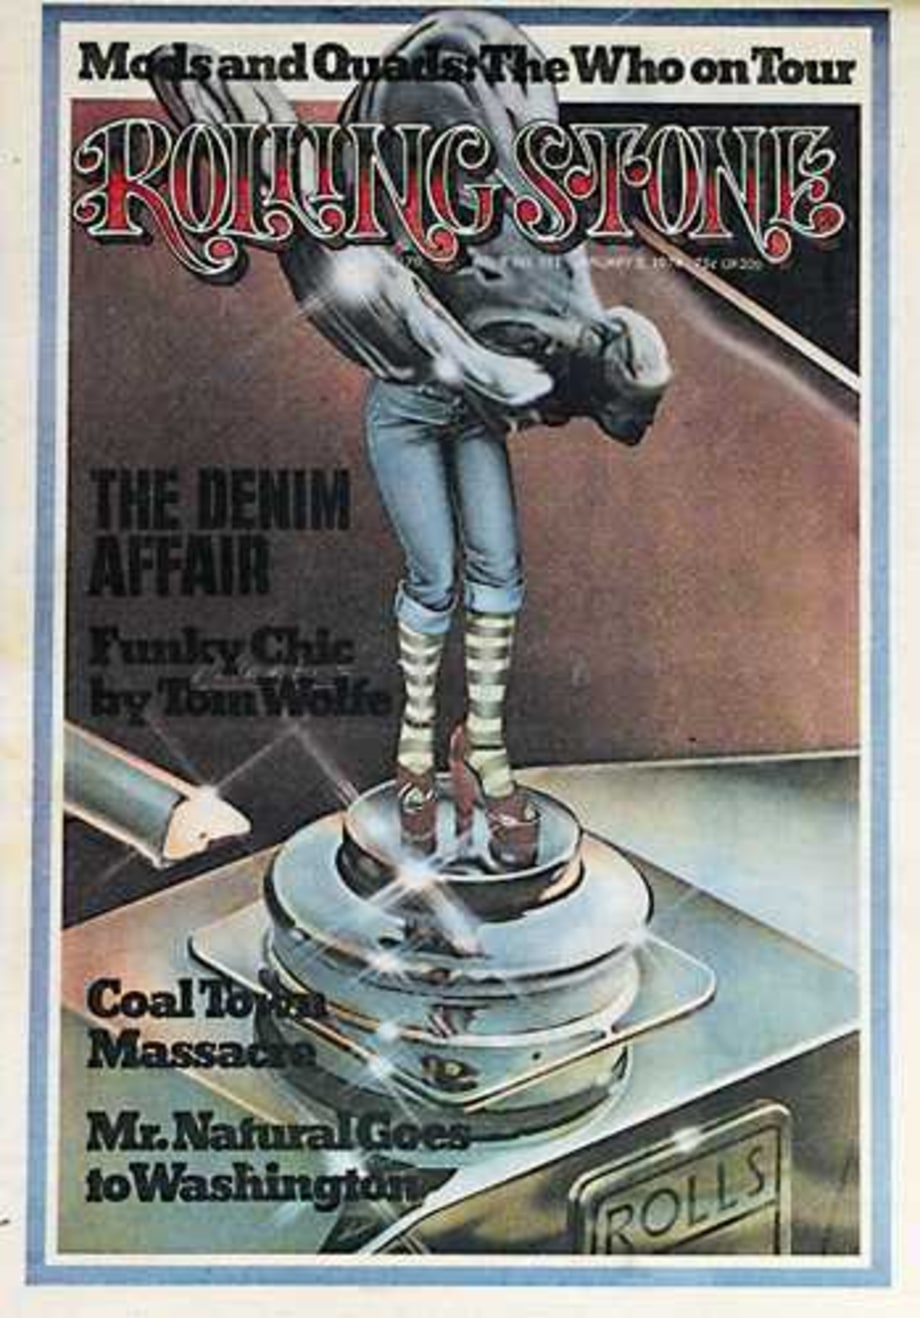 1974 Rolling Stone Covers